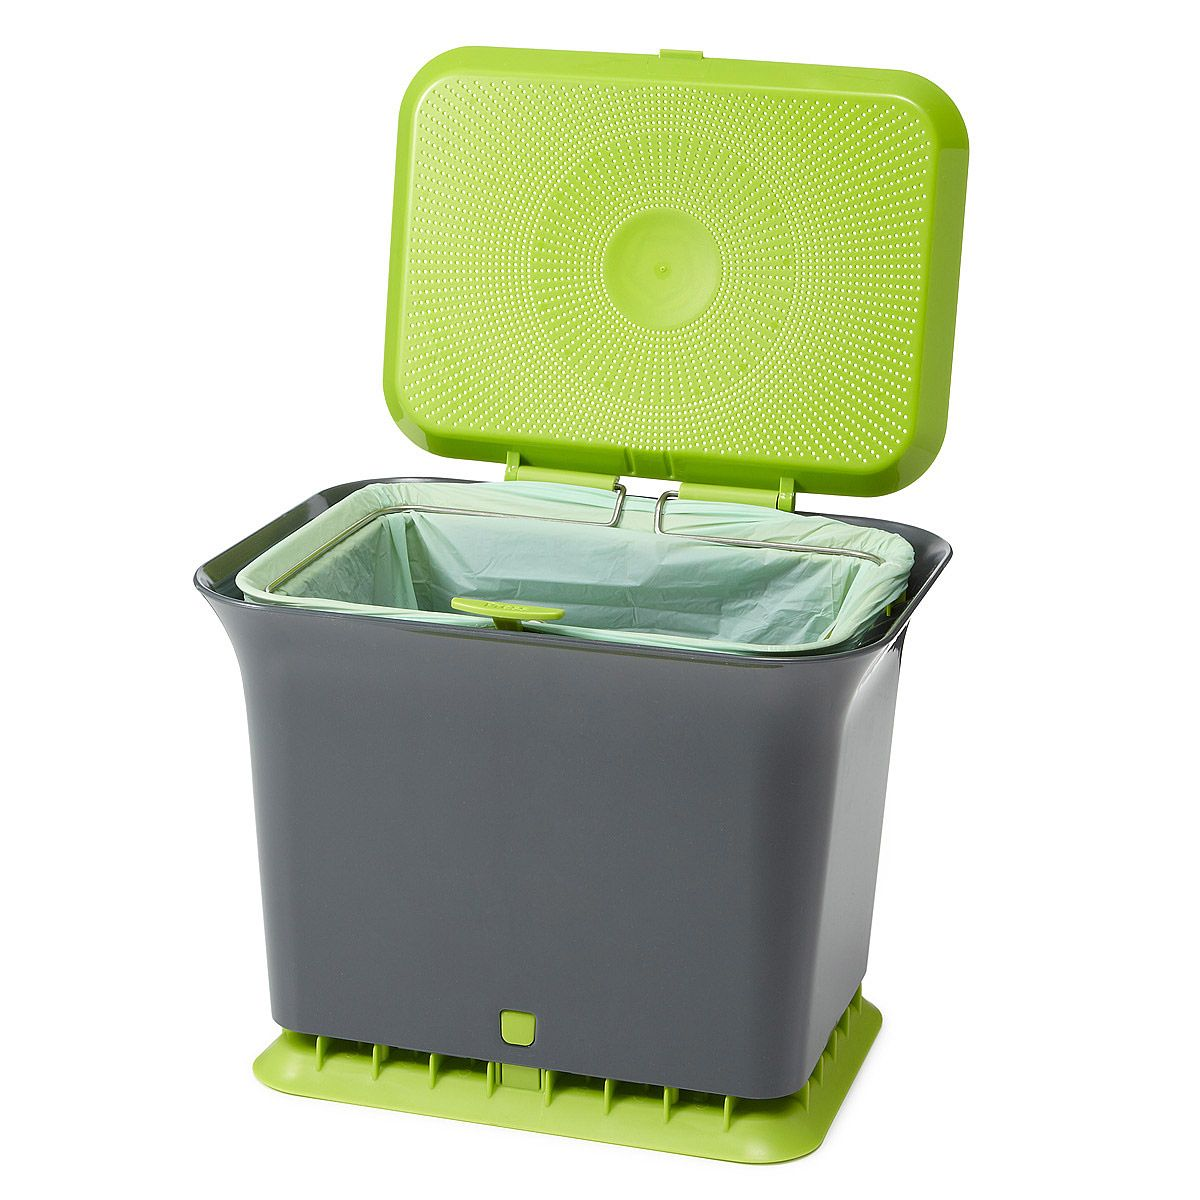 Fresh Air Compost Collector Odor Resistant Container Free Kitchen Collect Bin Reduce